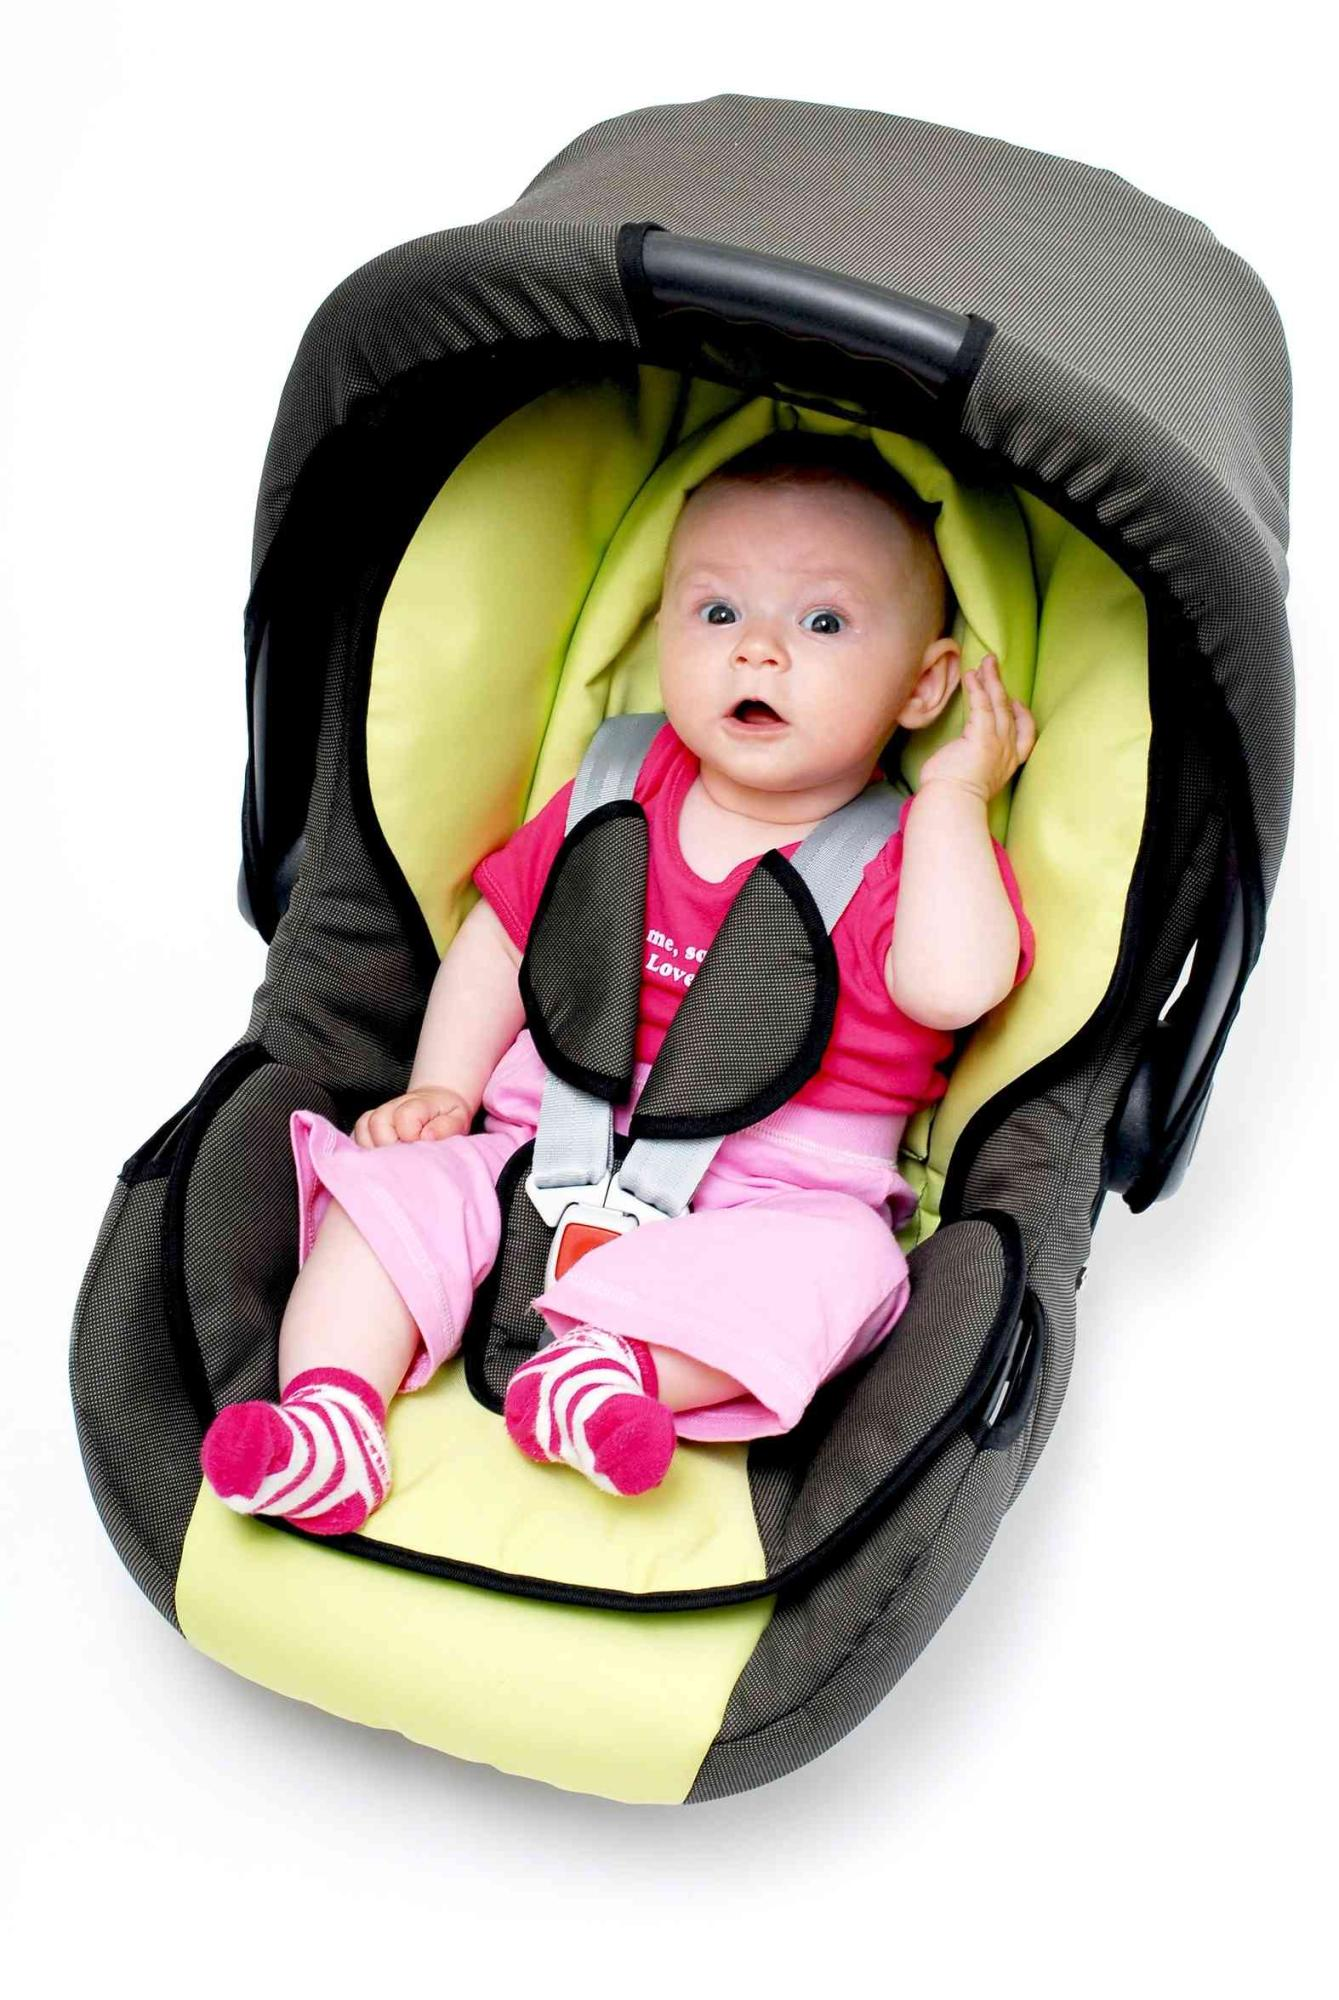 Car Seat, Baby Car Seat Going On A Car Trip With Your Baby